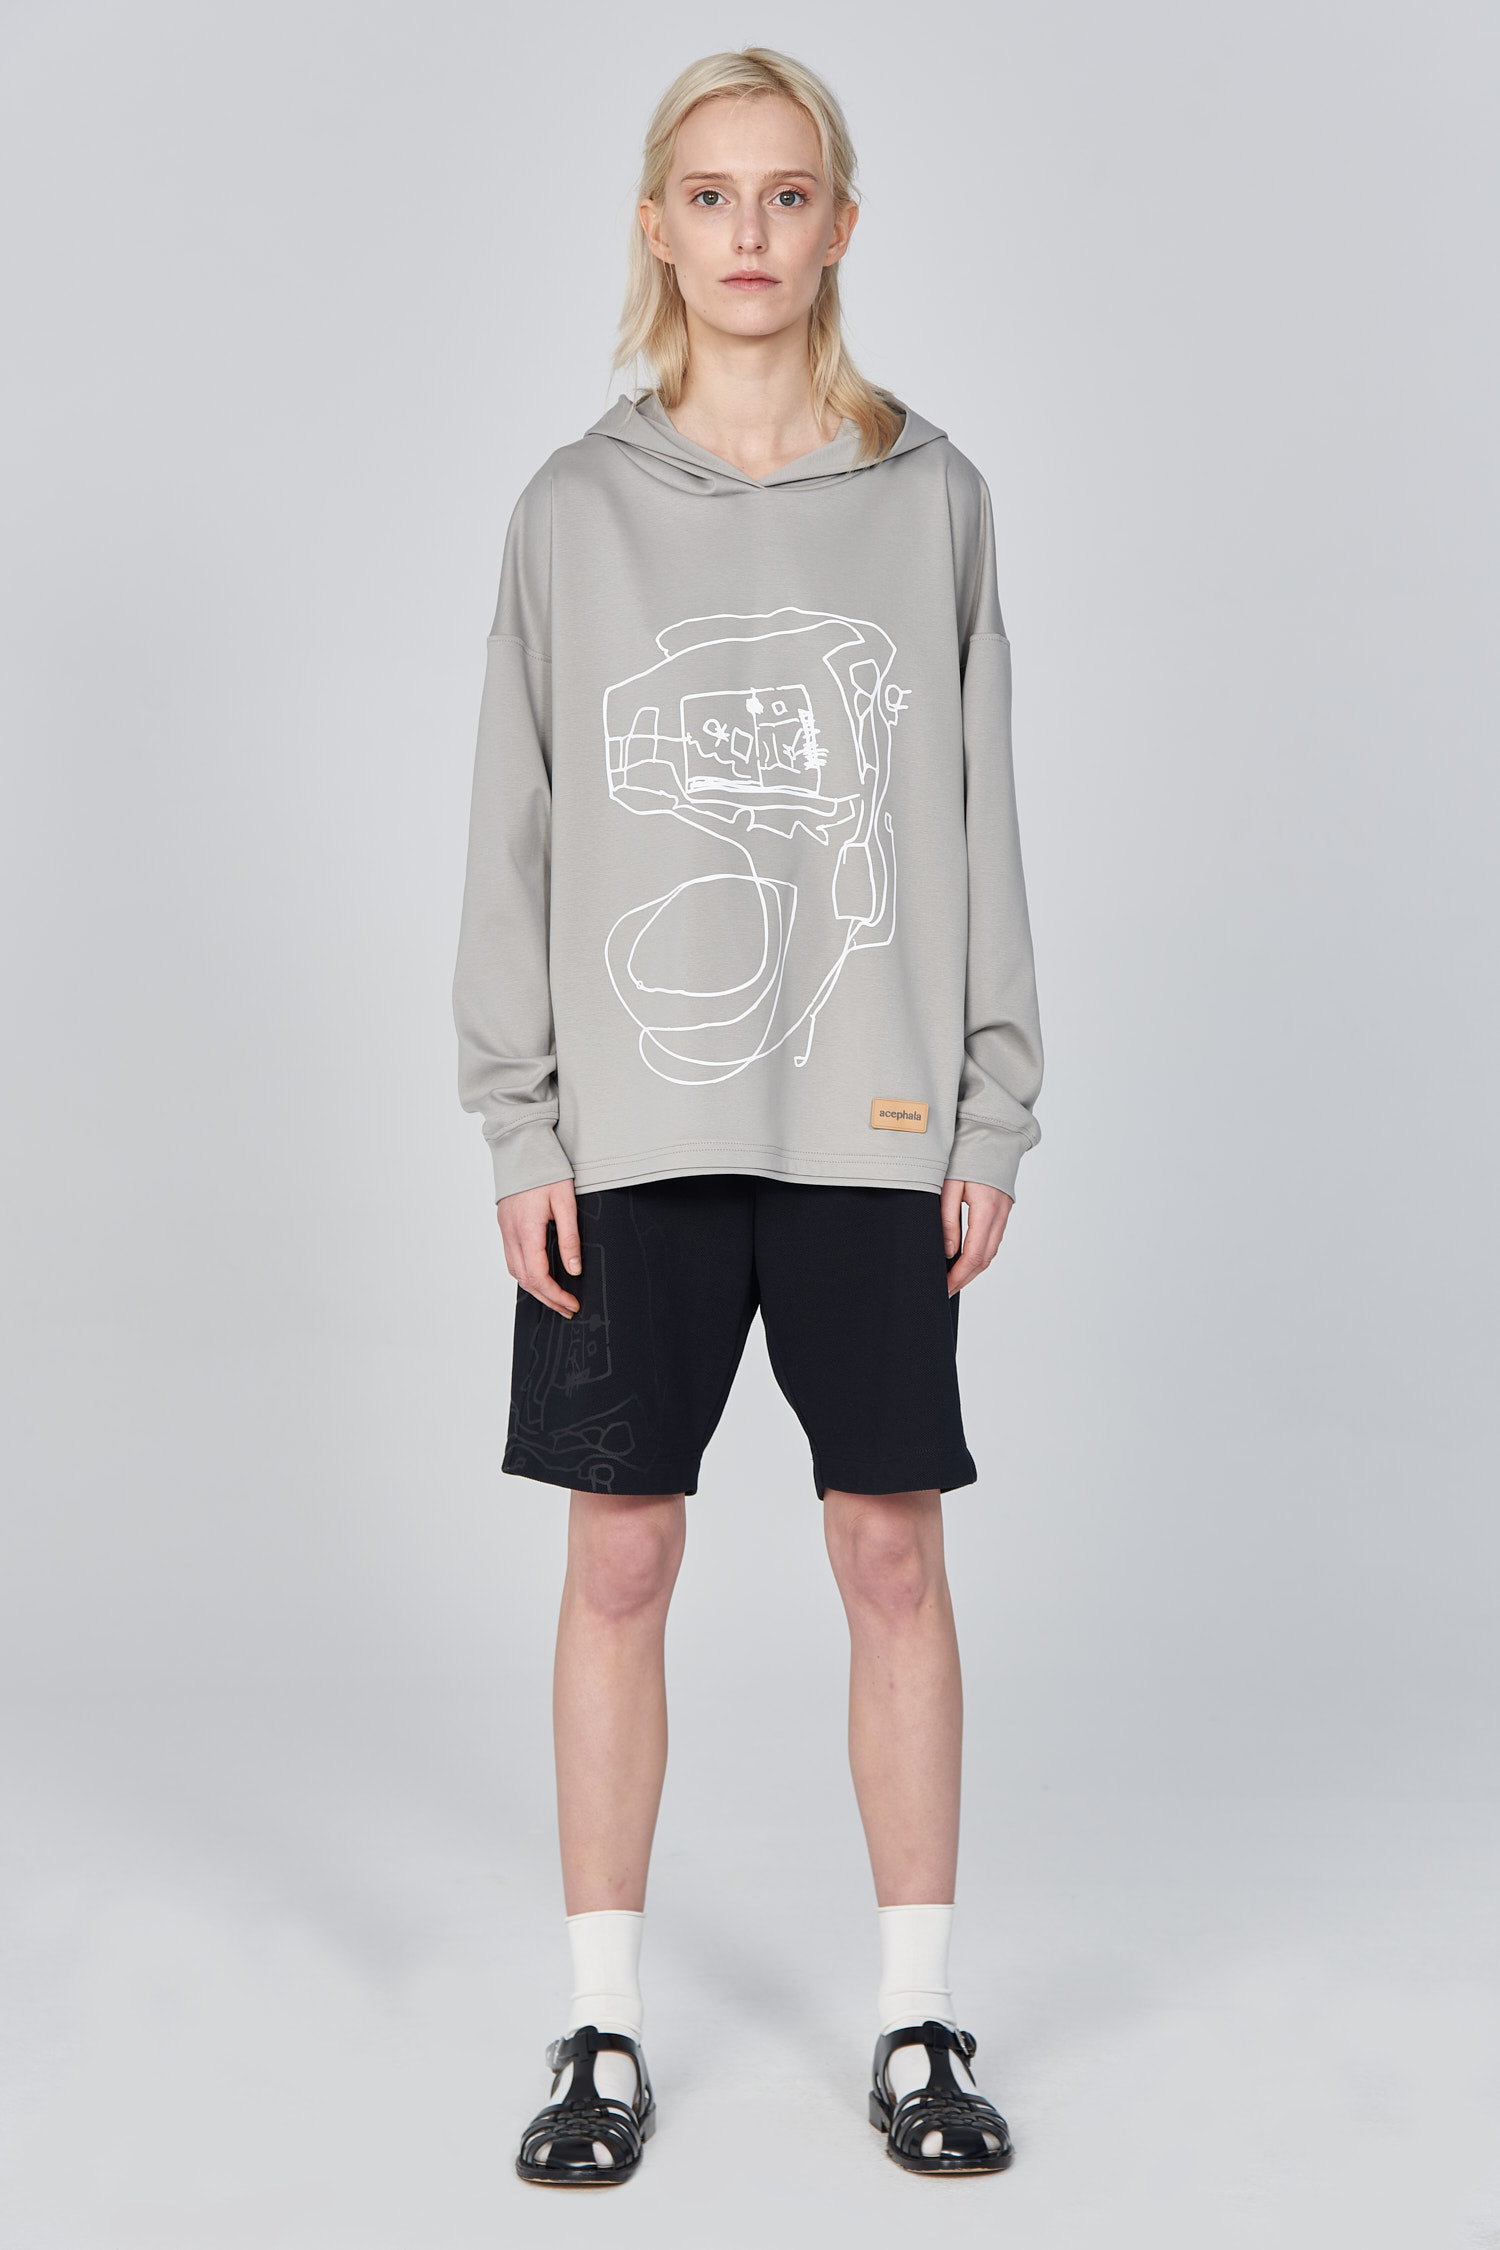 Acephala Ss21 Unisex Grey Hoodie With Graphic Print Front